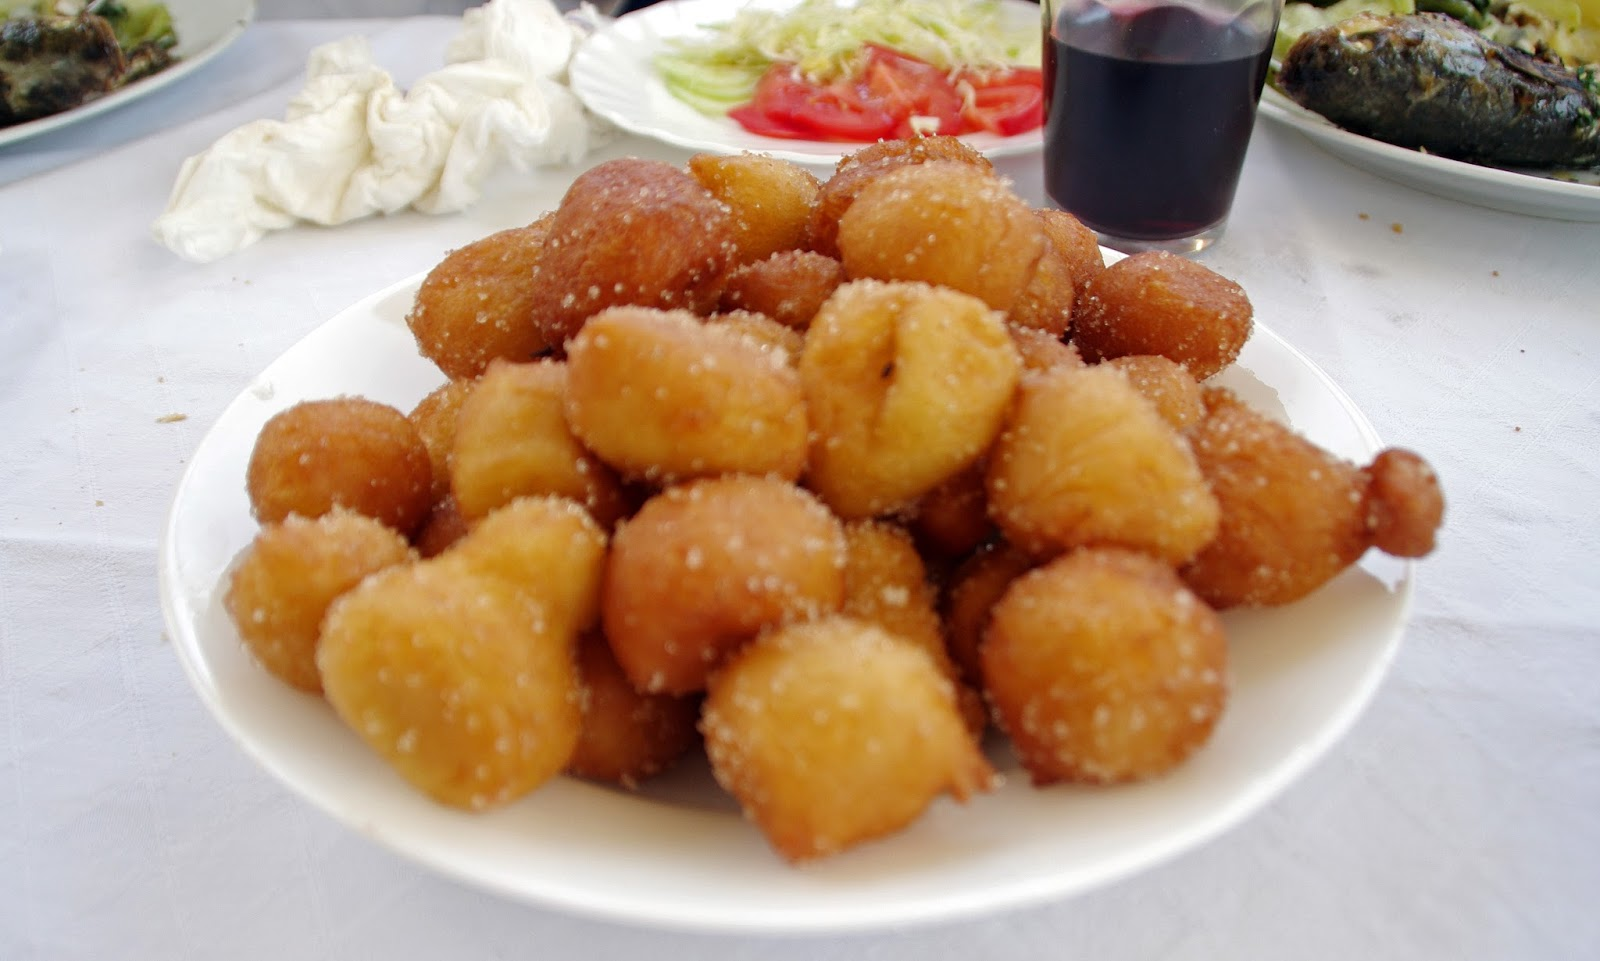 Croatian donuts